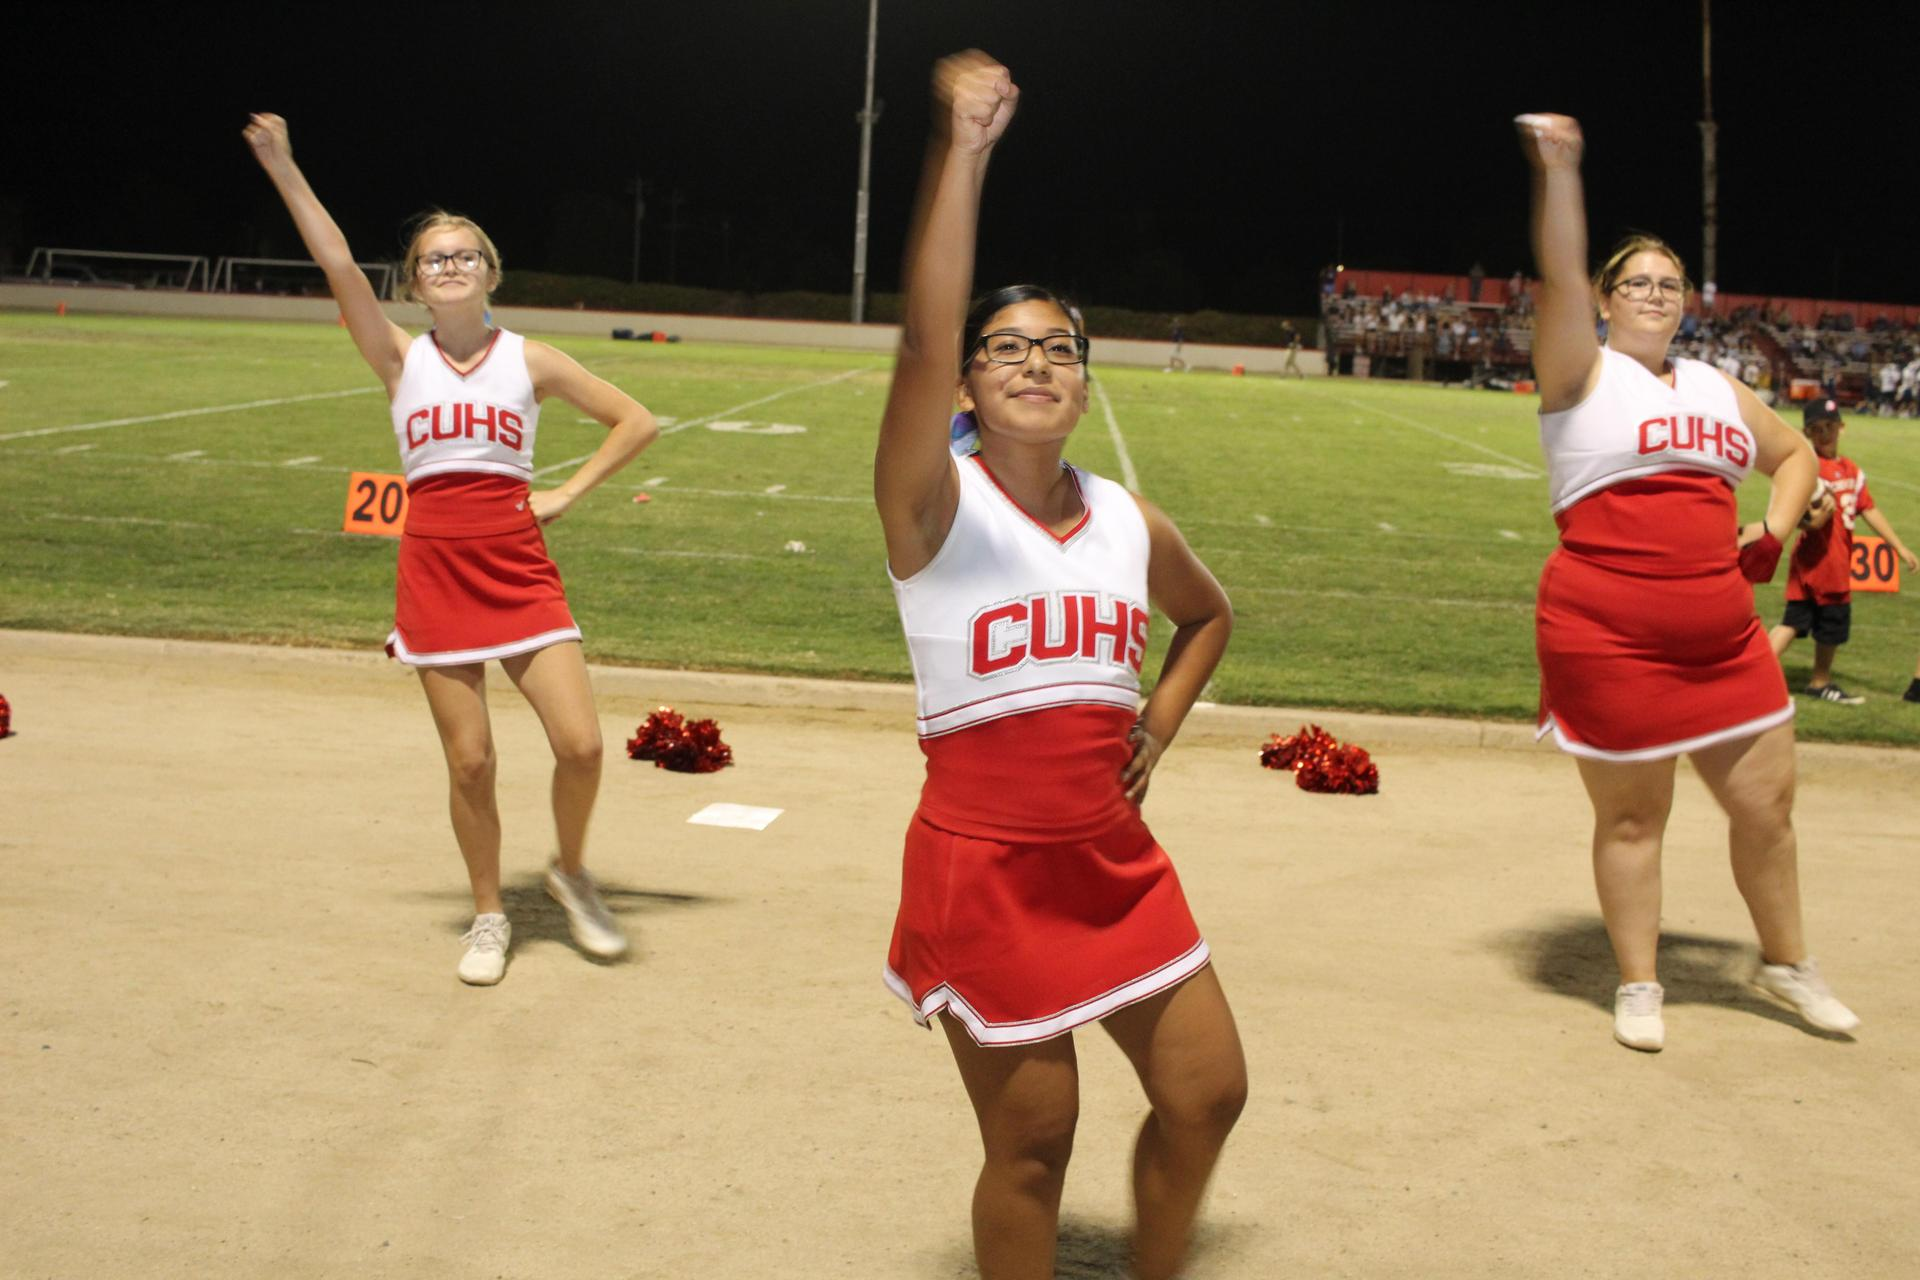 Cheerleaders cheering at the varsity game against central valley christian